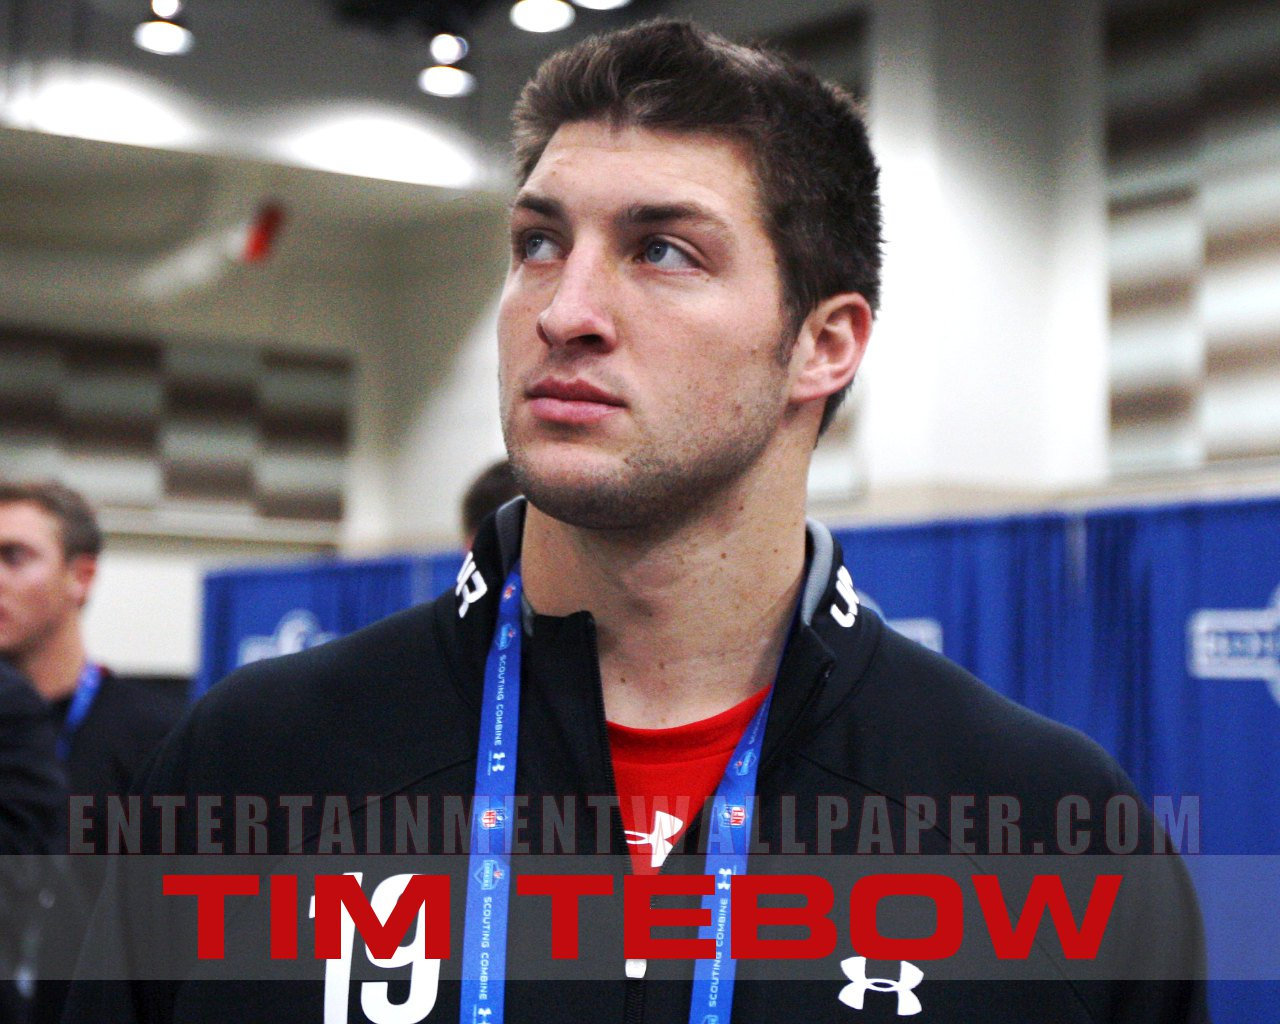 Tim Tebow Wallpaper - Original size, download now.